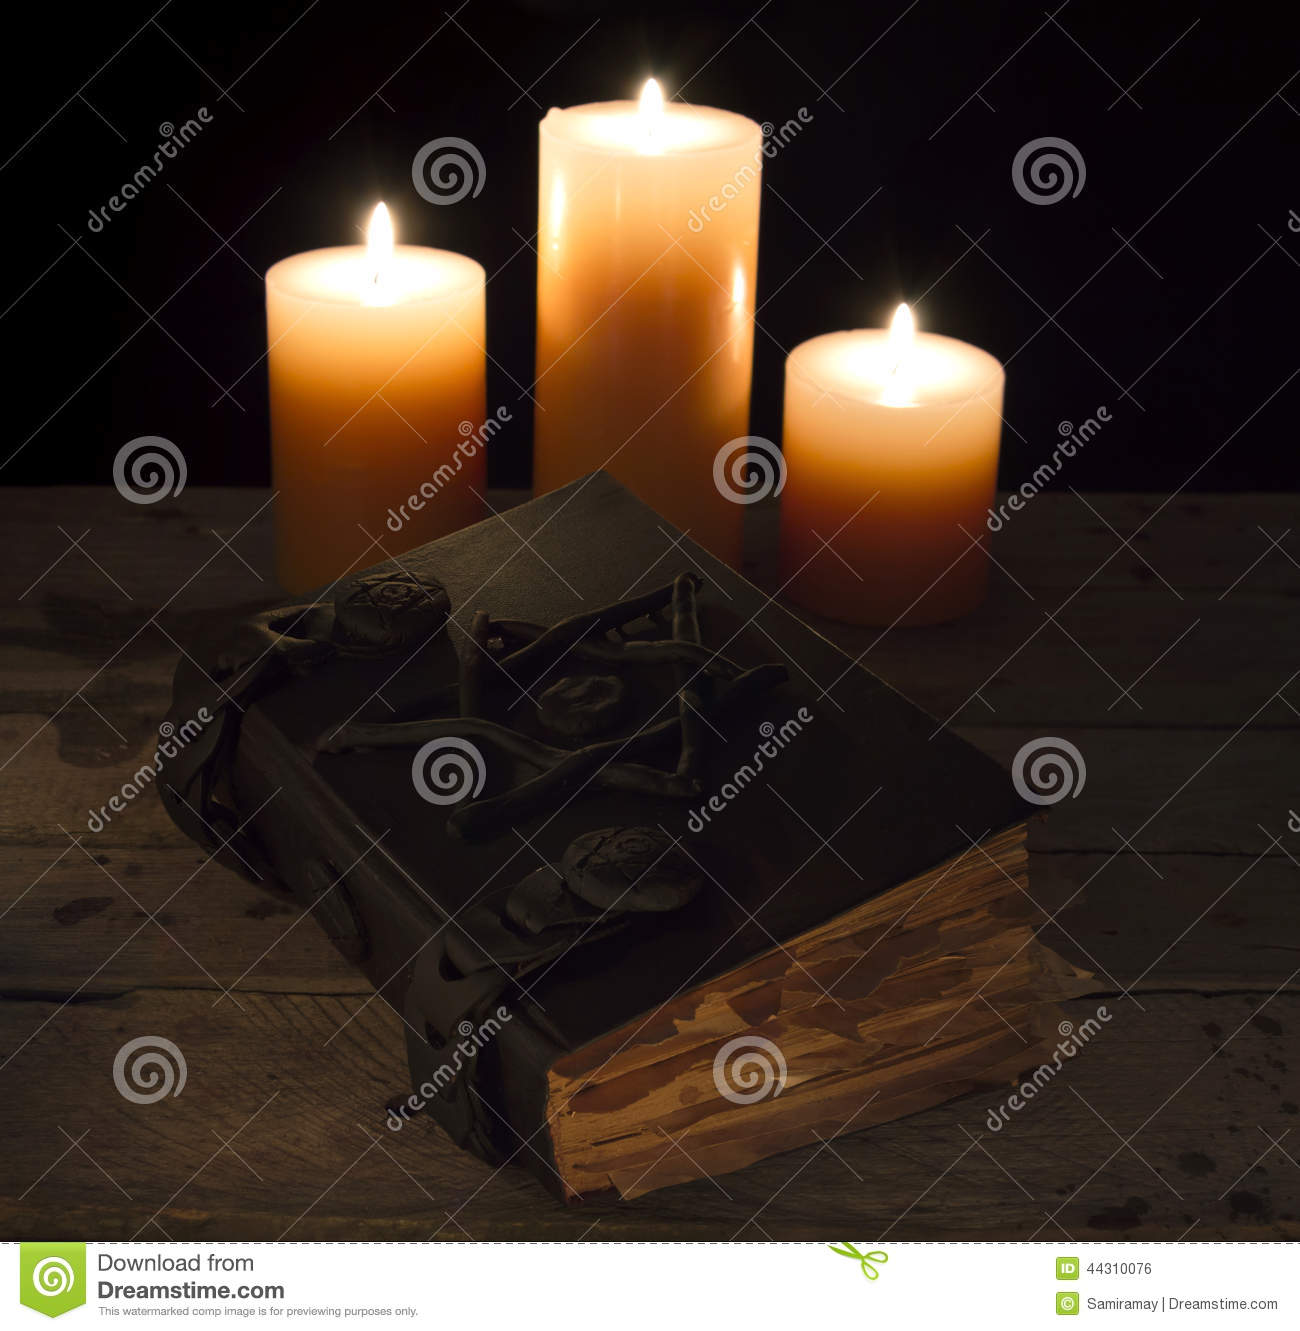 August 2014 Cpo Offers Table Jpg: Closed Magic Book With Candles Stock Photo